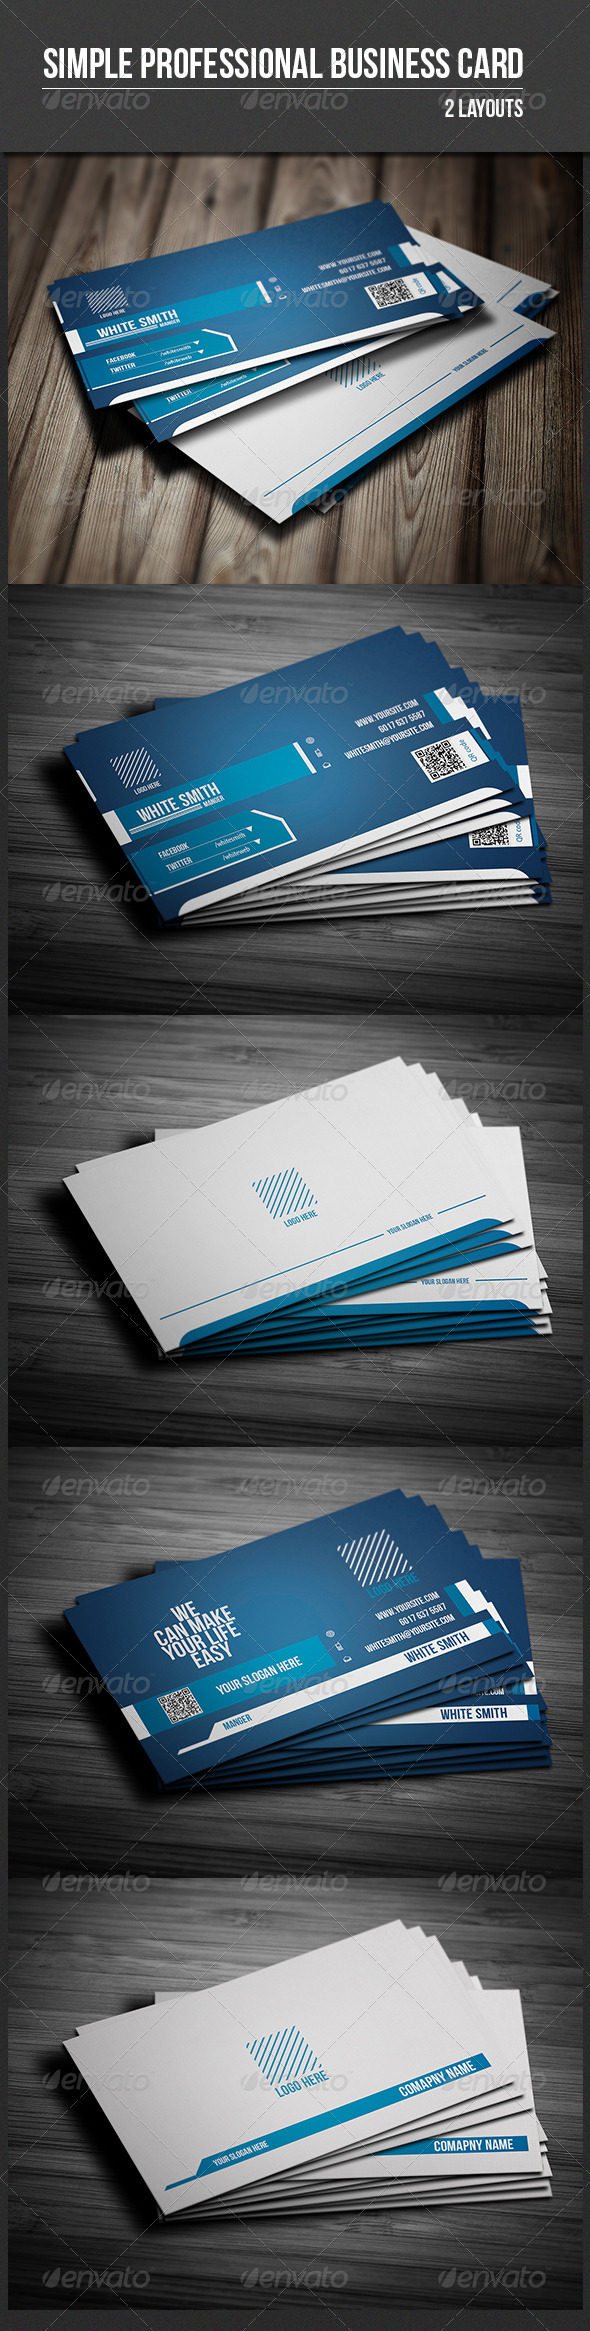 Simple Professional Business Card - Business Cards Print Templates